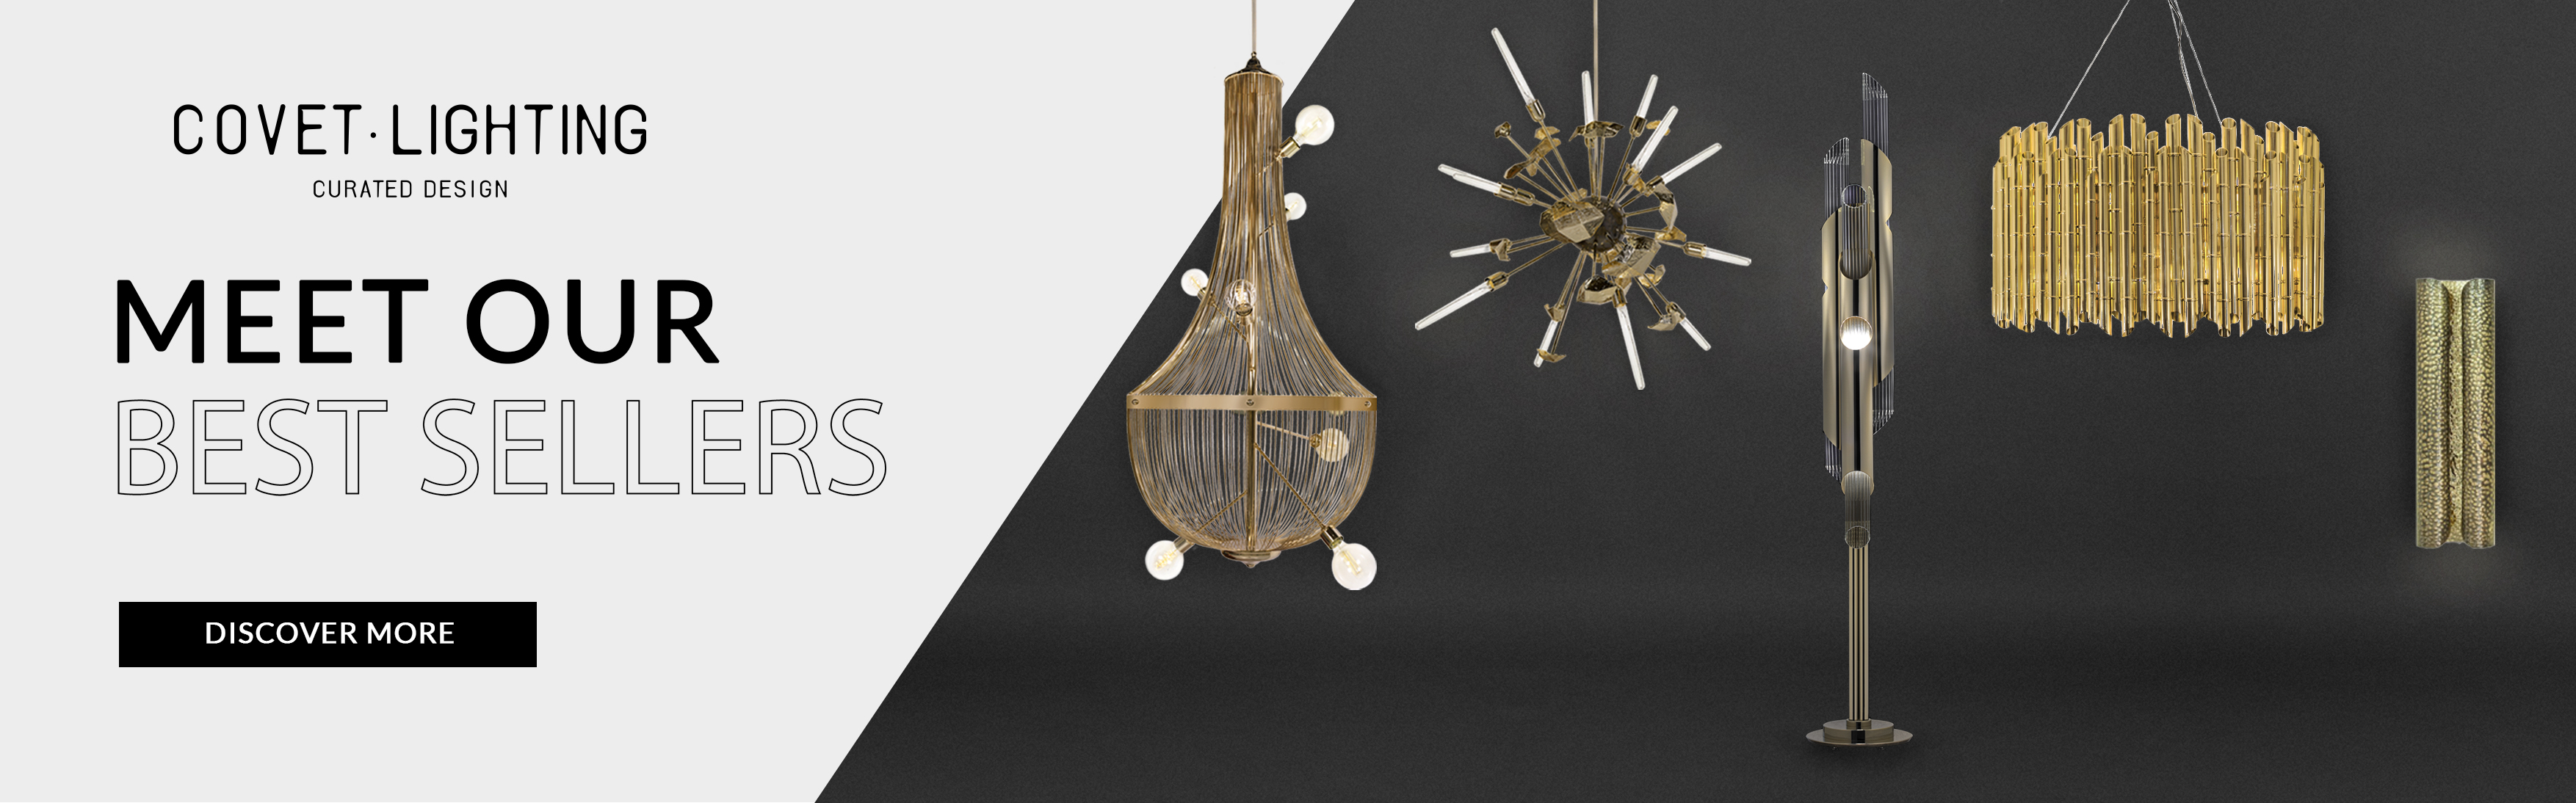 BEST SELLERS COVET LIGHITNG new york A Curated Selection Of Interior Designers From New York BANNER LIGHTING